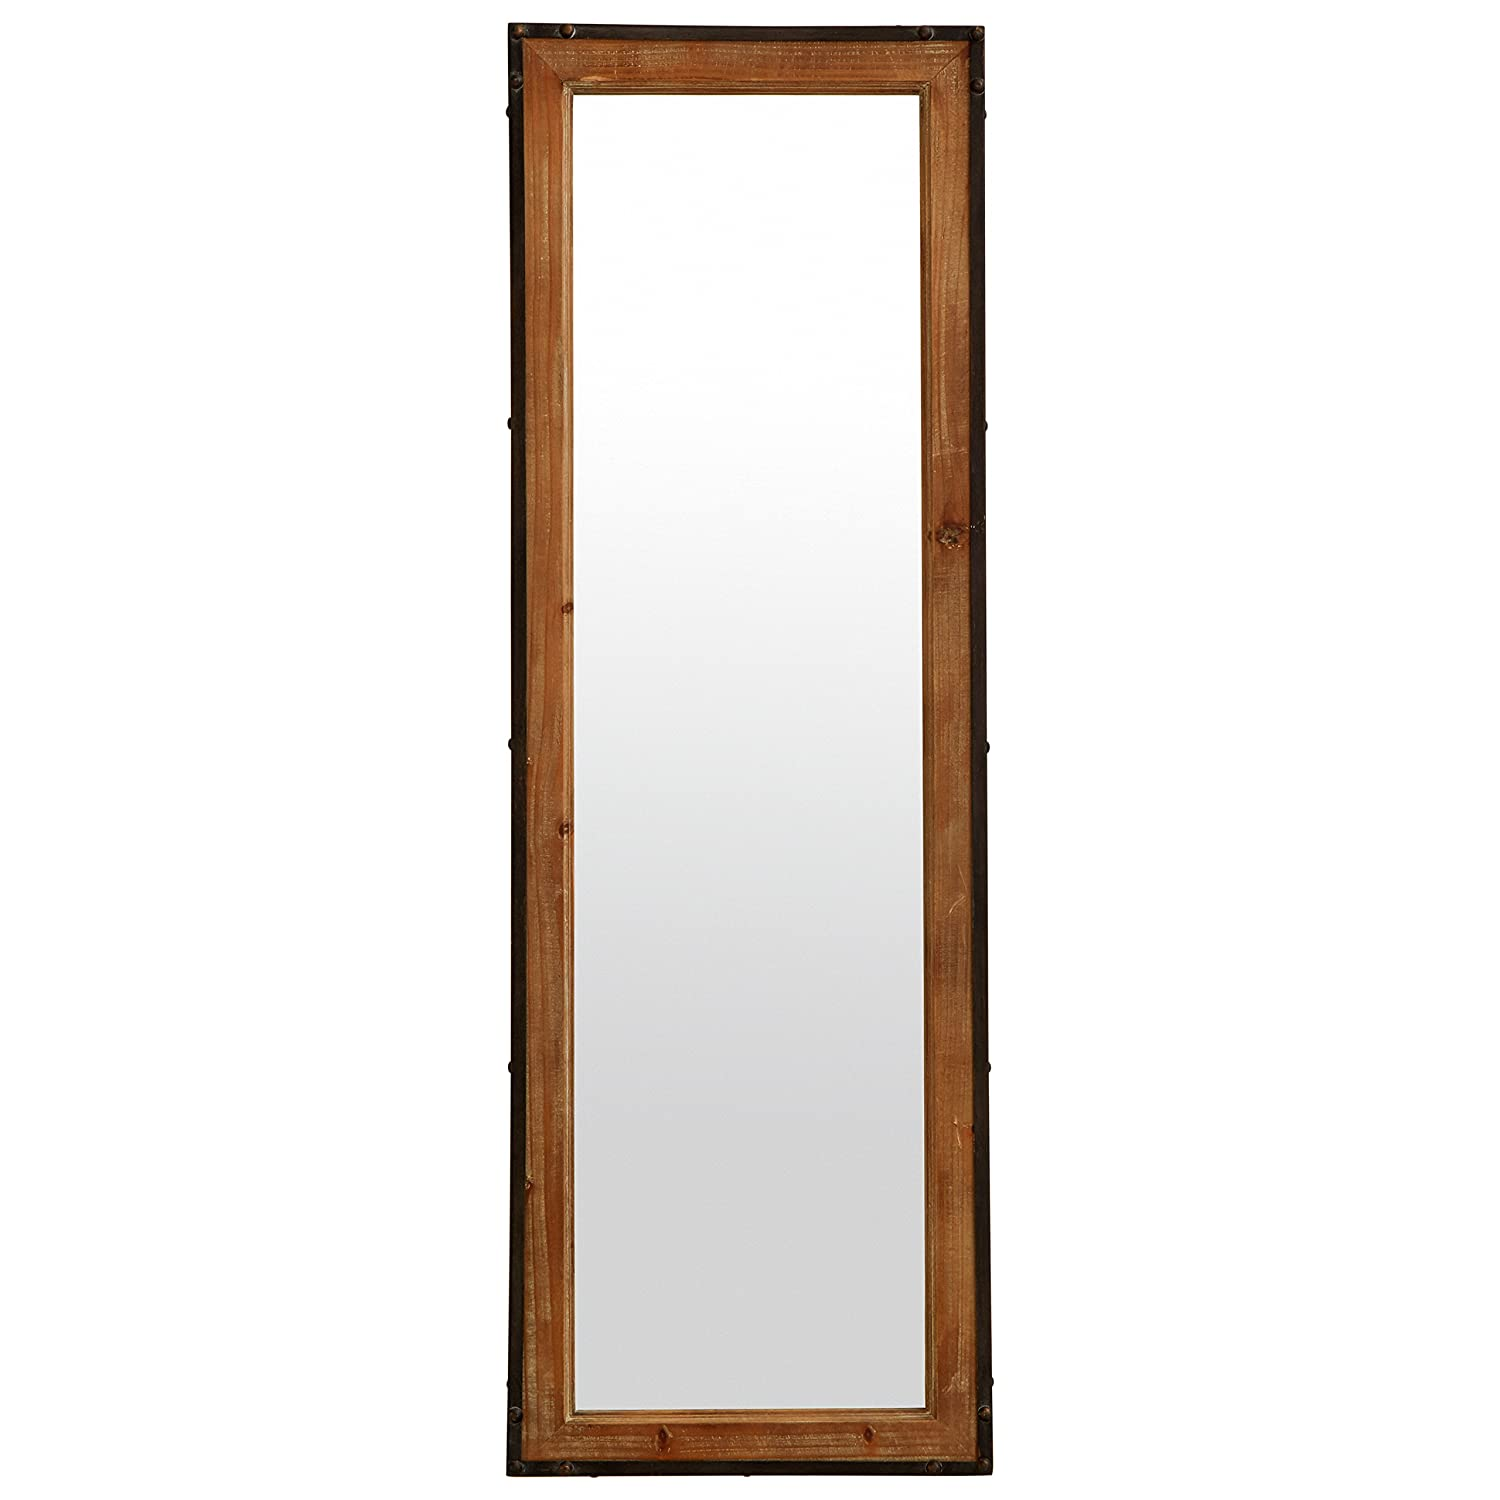 Stone & Beam Wood and Iron Mirror, 42.25 H, Natural Wood and Black 42.25 H L165087